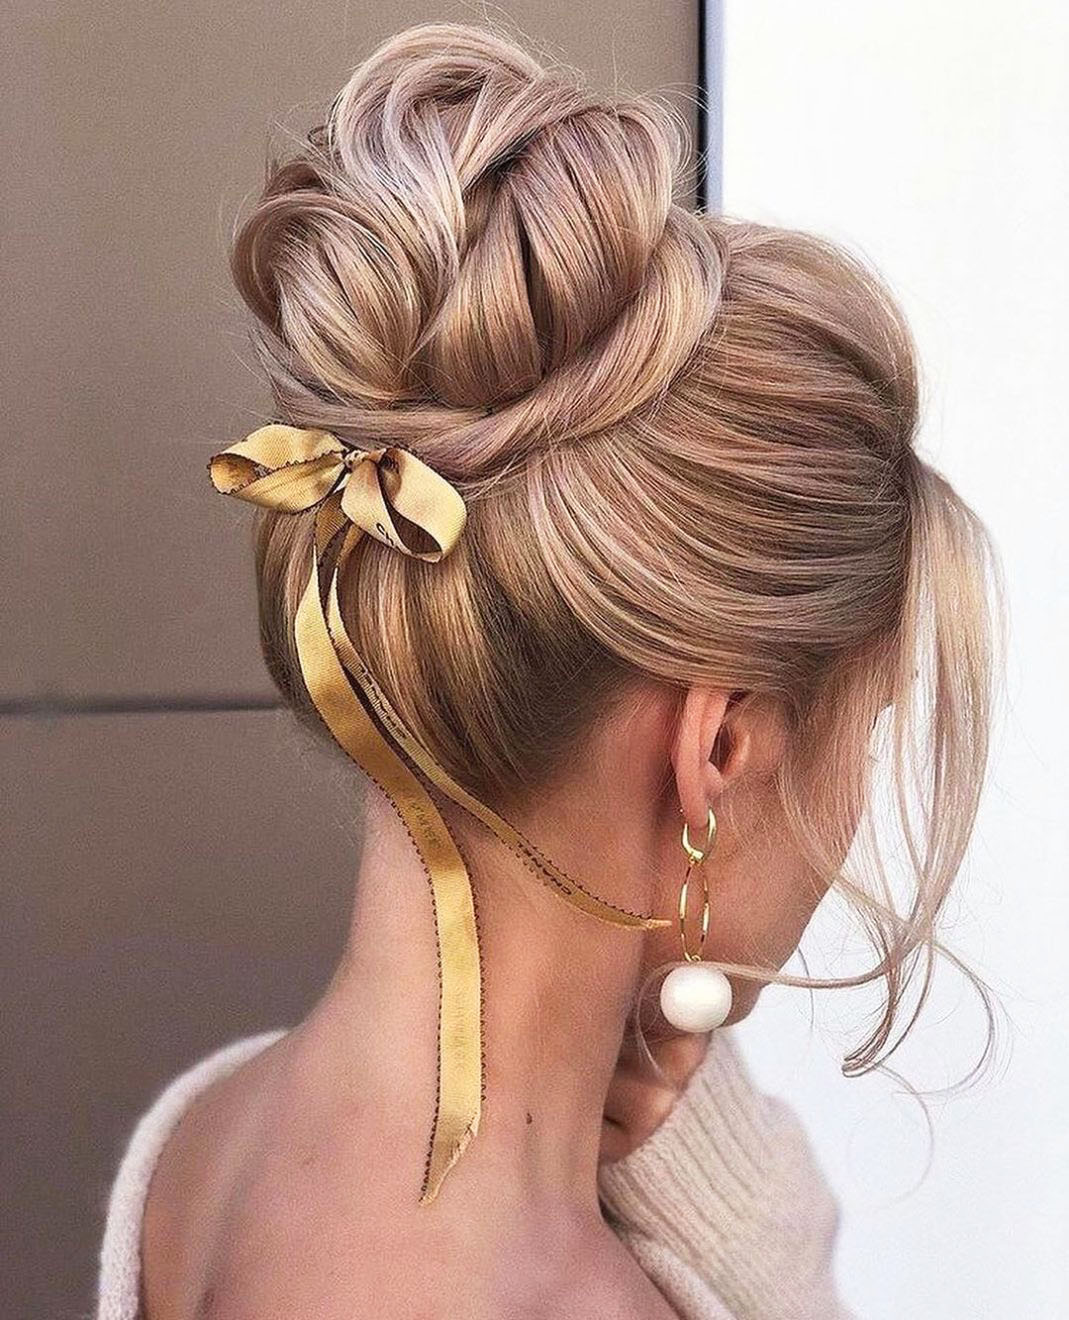 Hairstyles Winter 2020 ideas from hair stylists 19 11